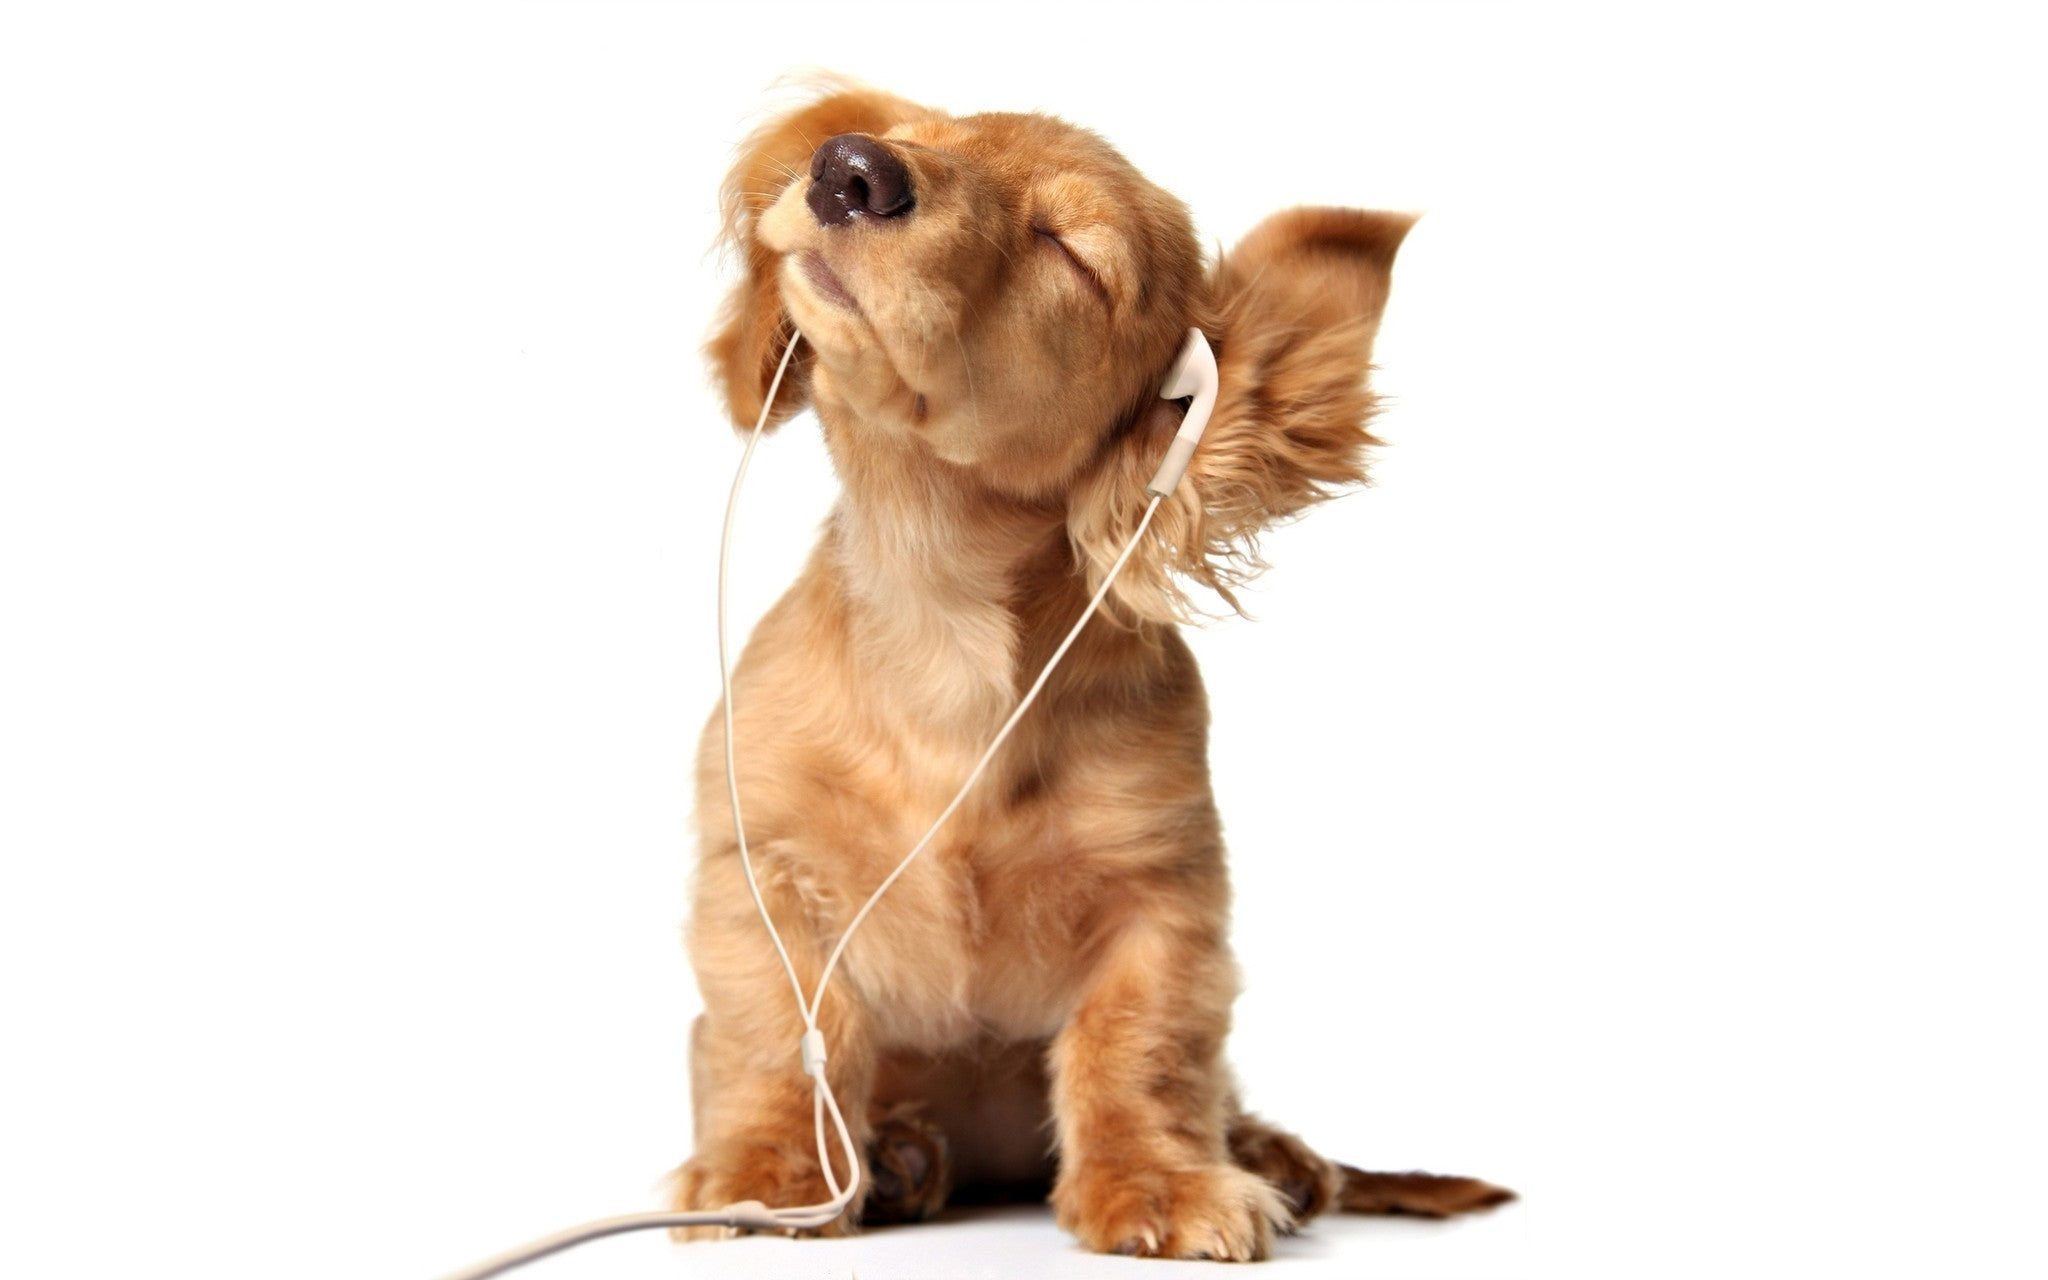 Can anti-anxiety music help your dog de-stress?